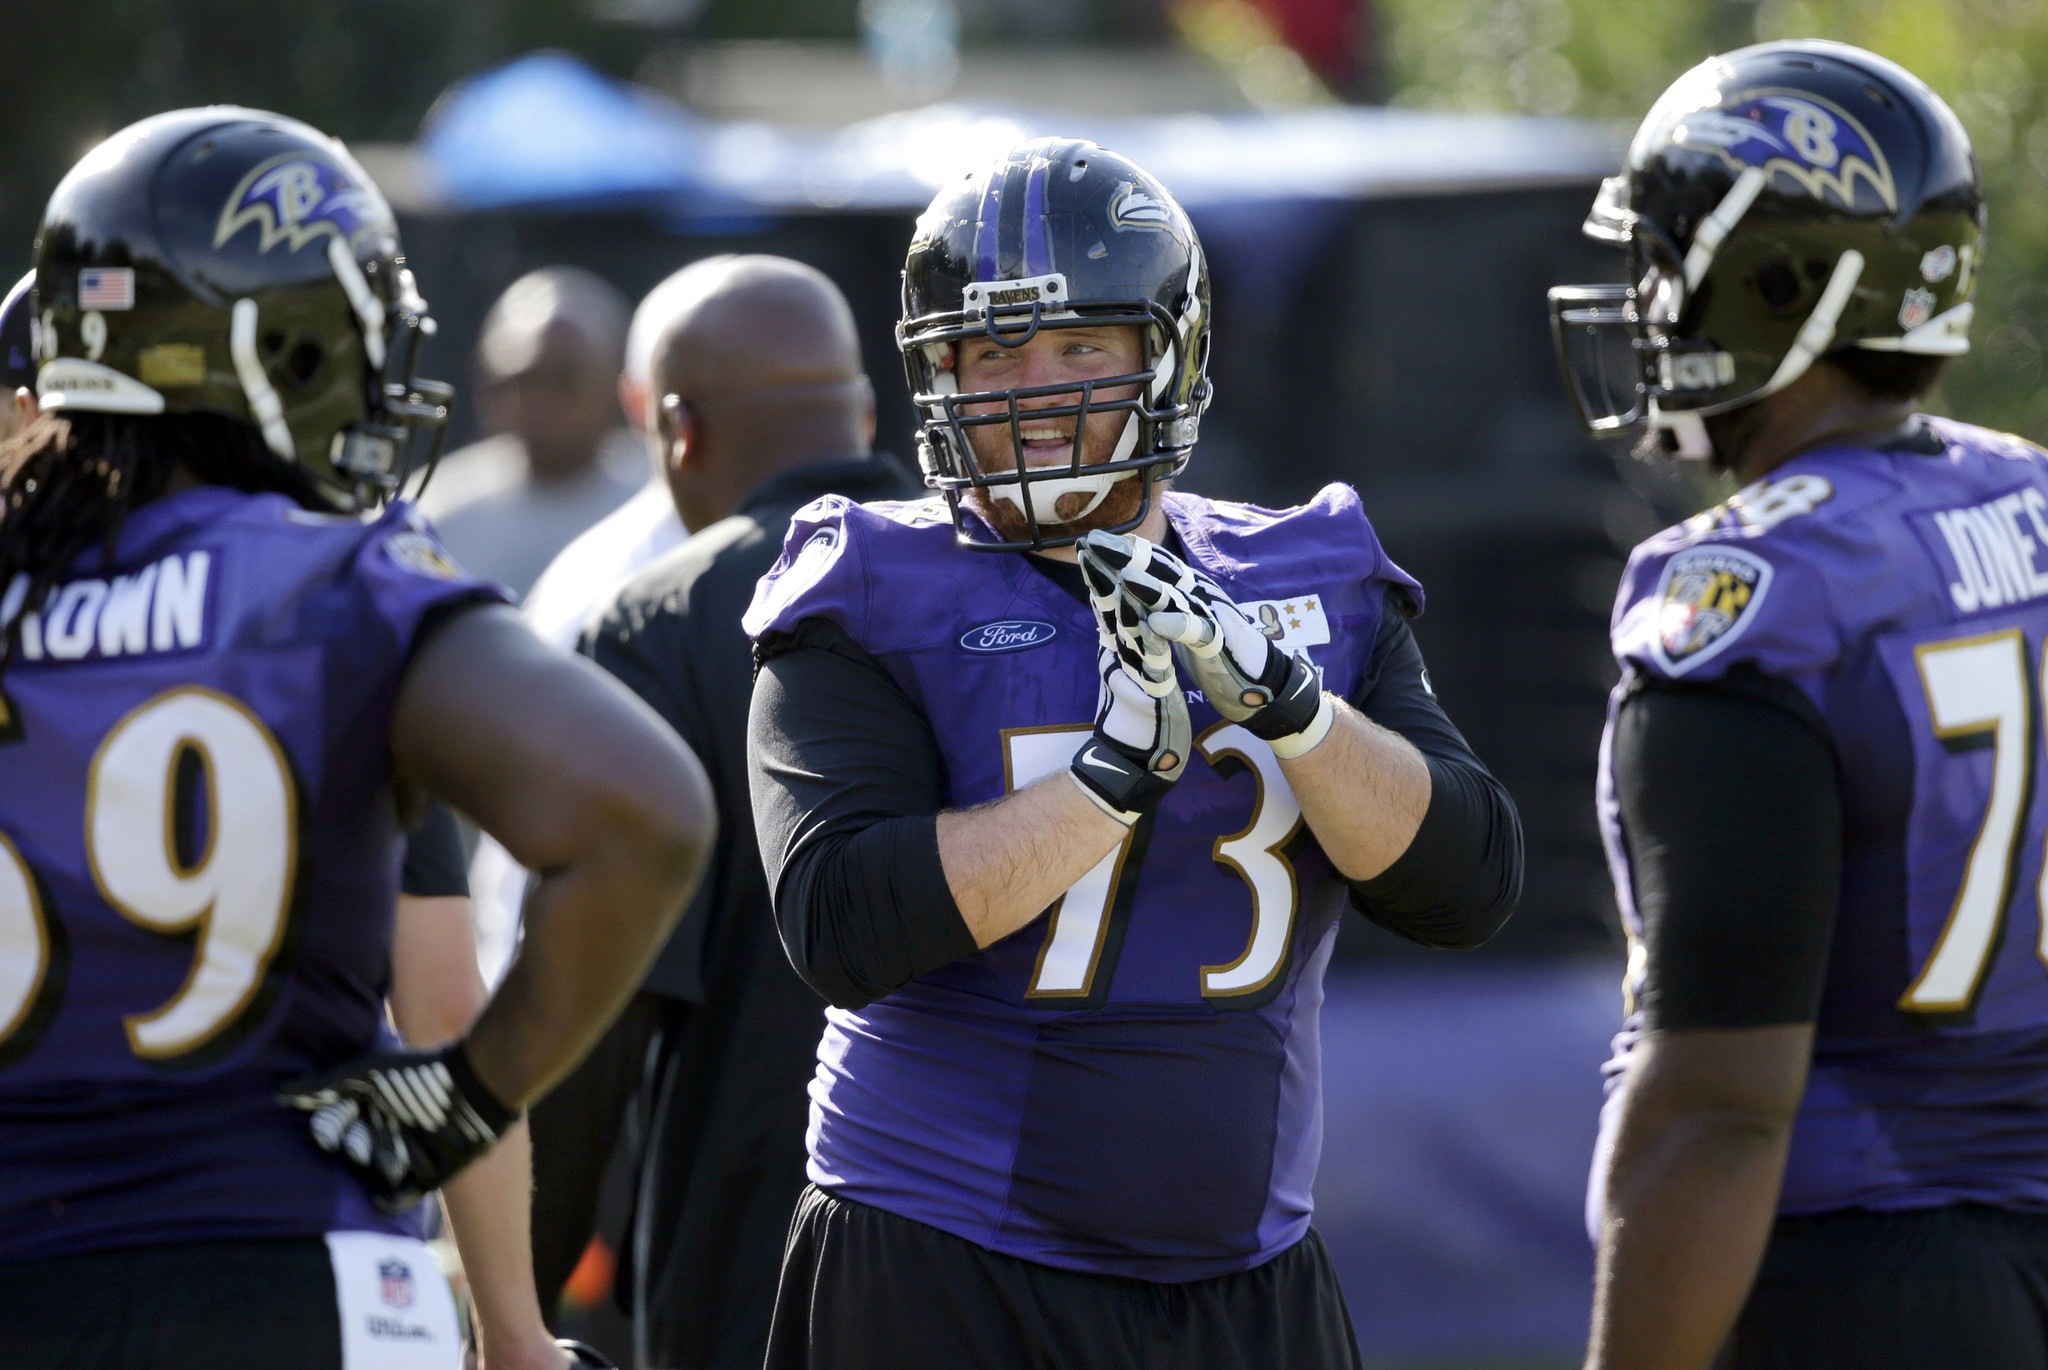 Marshal Yanda glad contract extension could allow him to end on